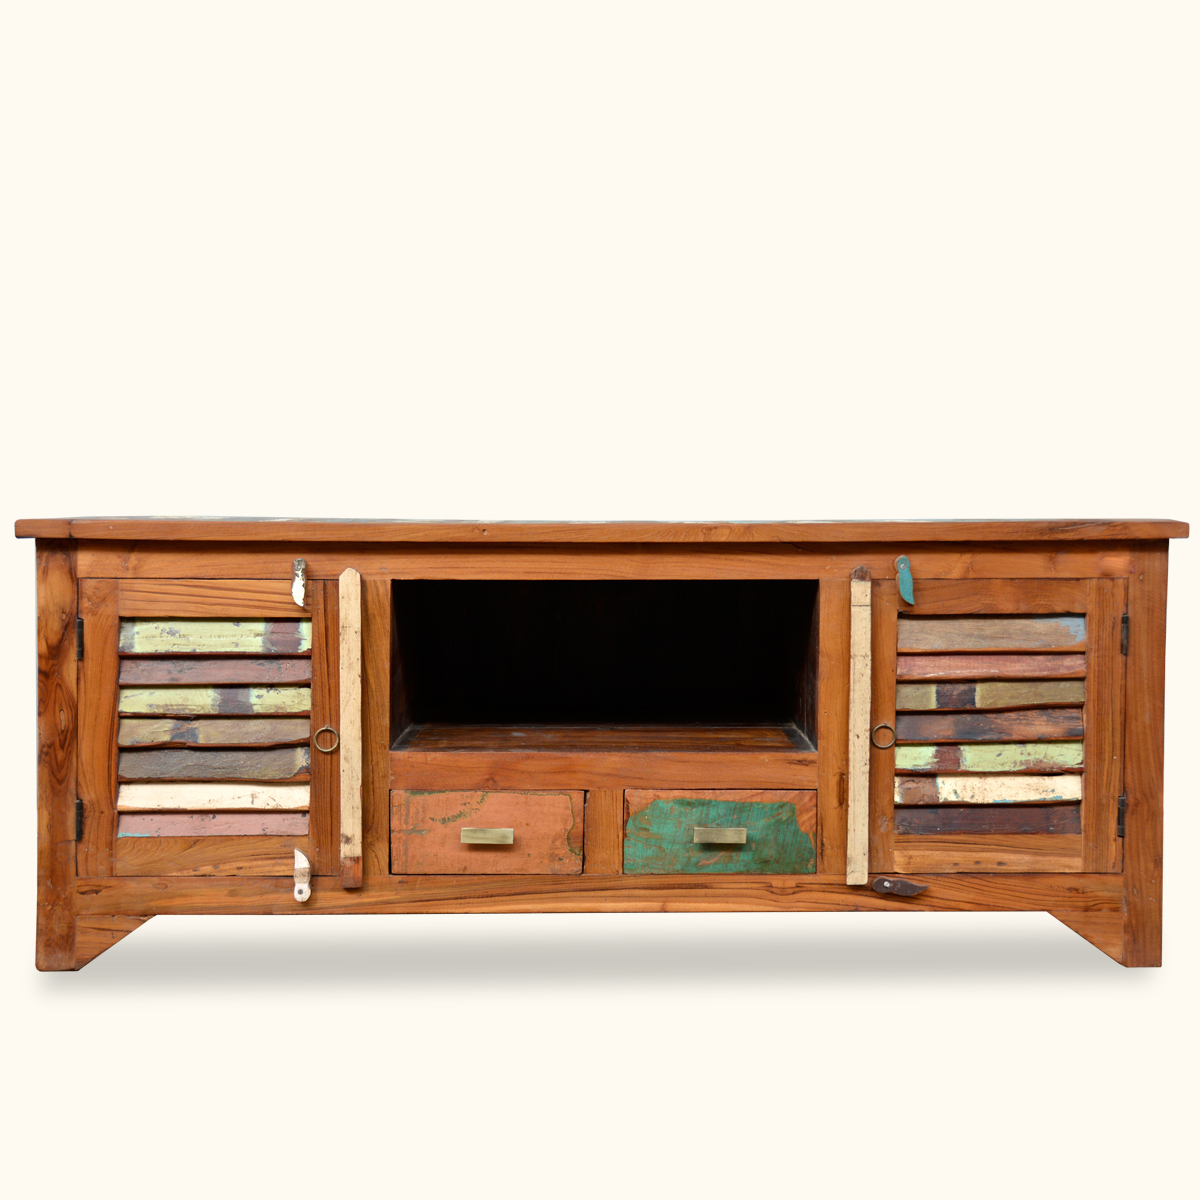 Reclaimed media console rustic entertainment center wooden cabinet furniture ebay Wooden entertainment center furniture